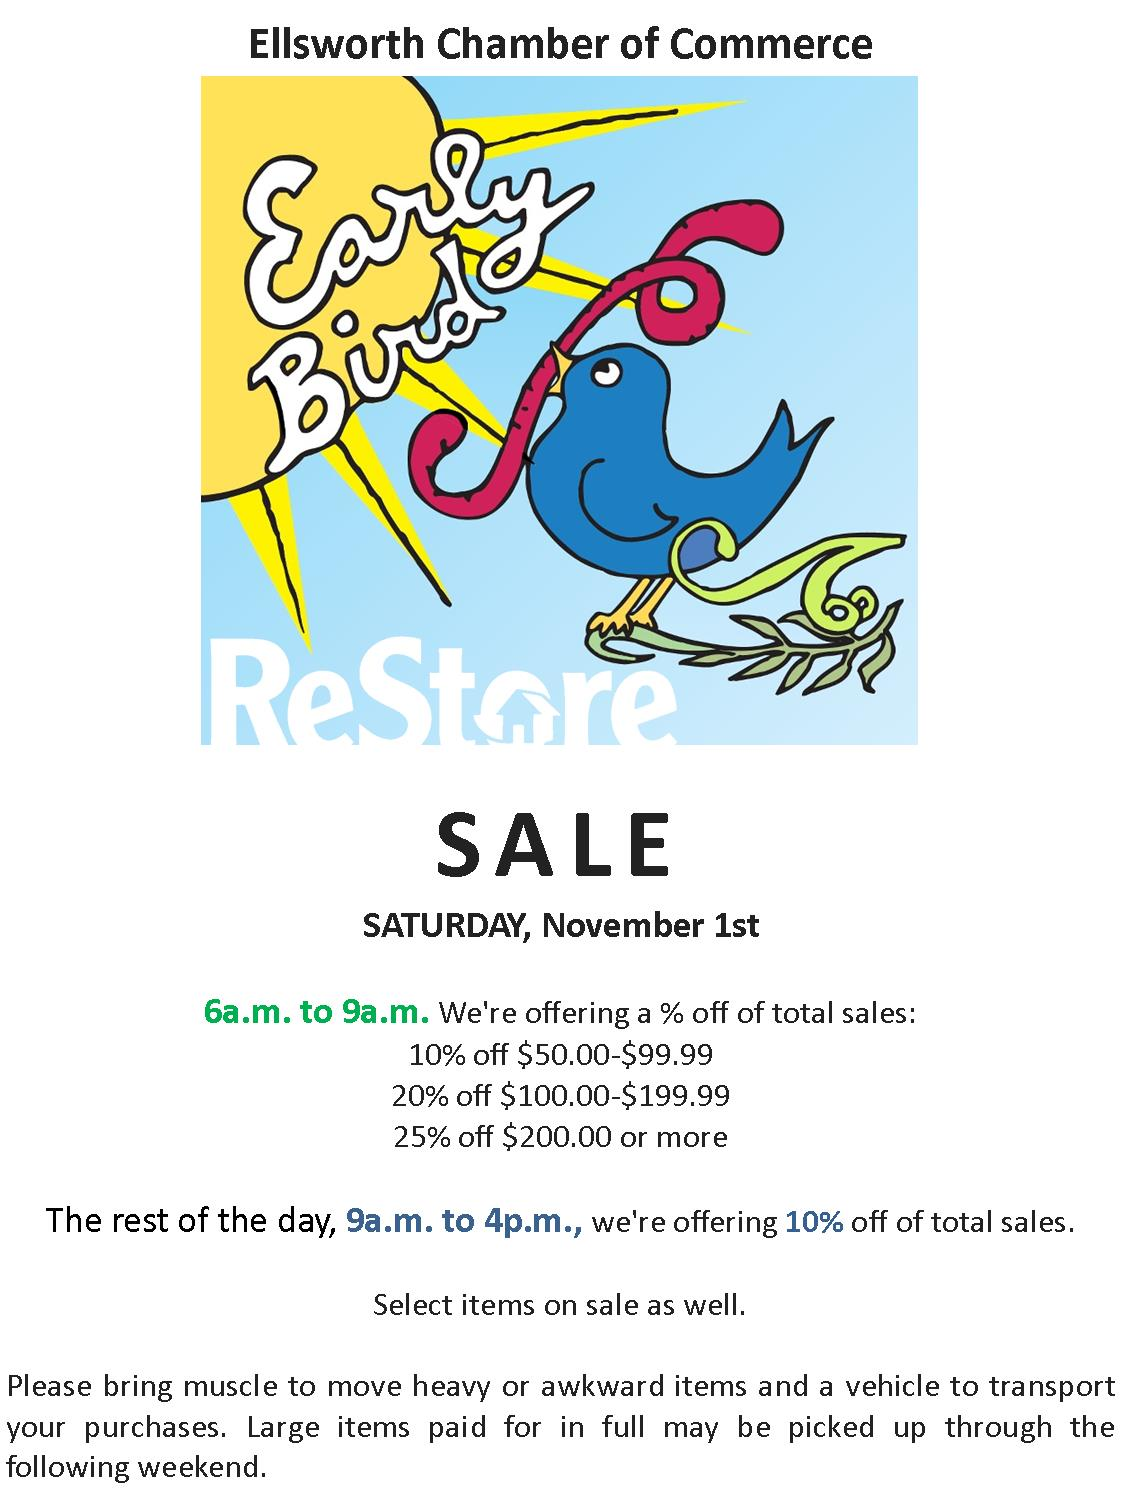 Early Bird Sale image for Media ReStore